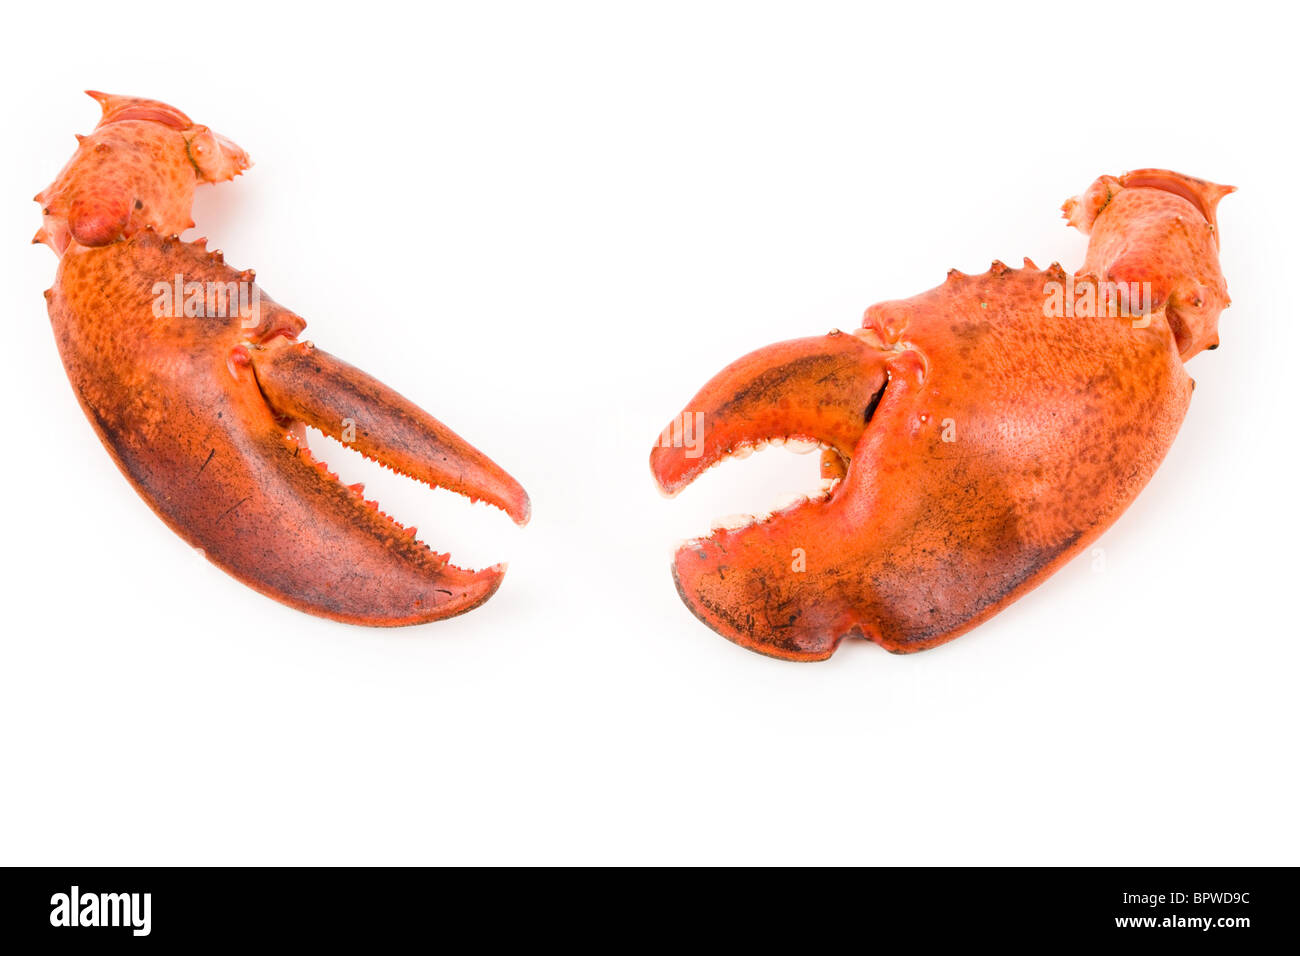 Lobster claw with white background - Stock Image